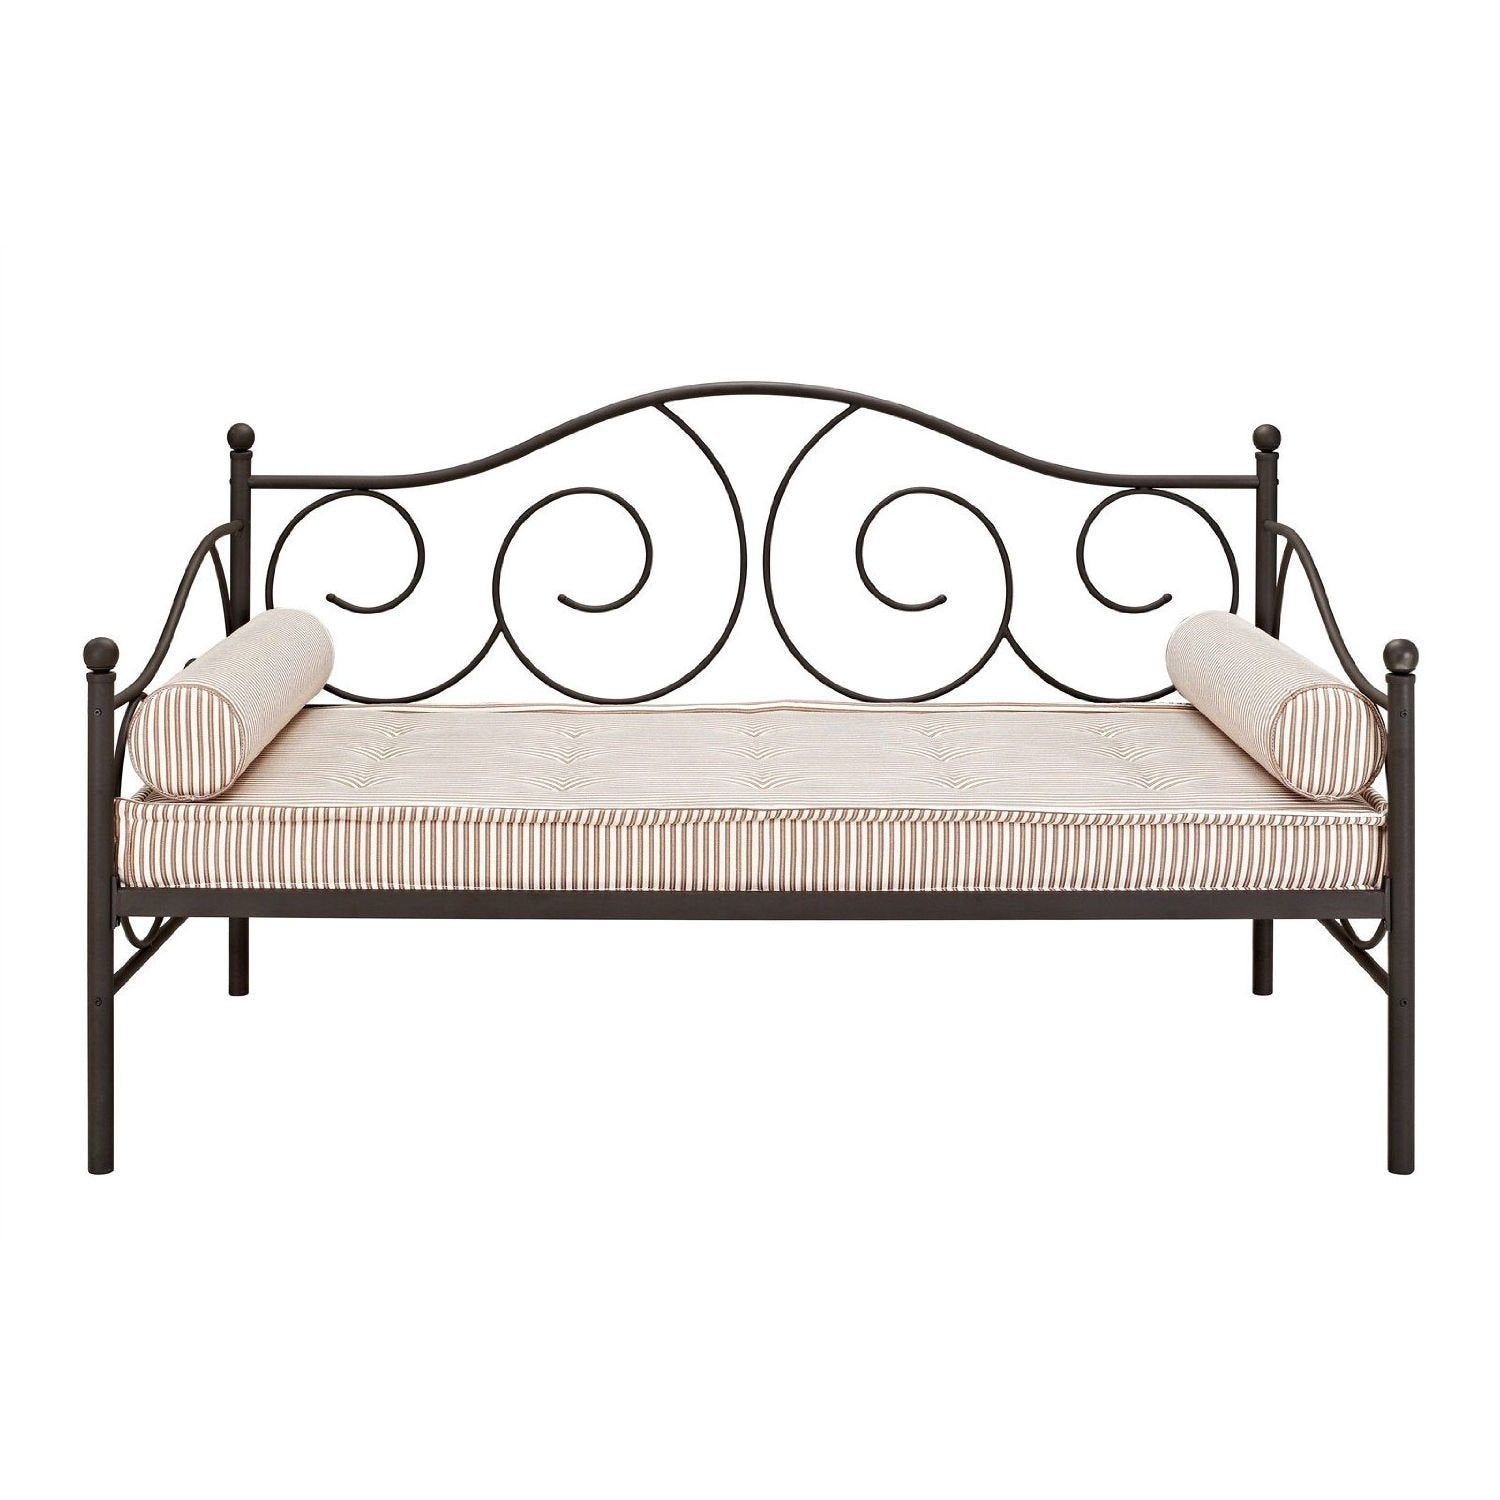 Twin size Scrolling Metal Day Bed Frame in Brushed Bronze Dark Pewter